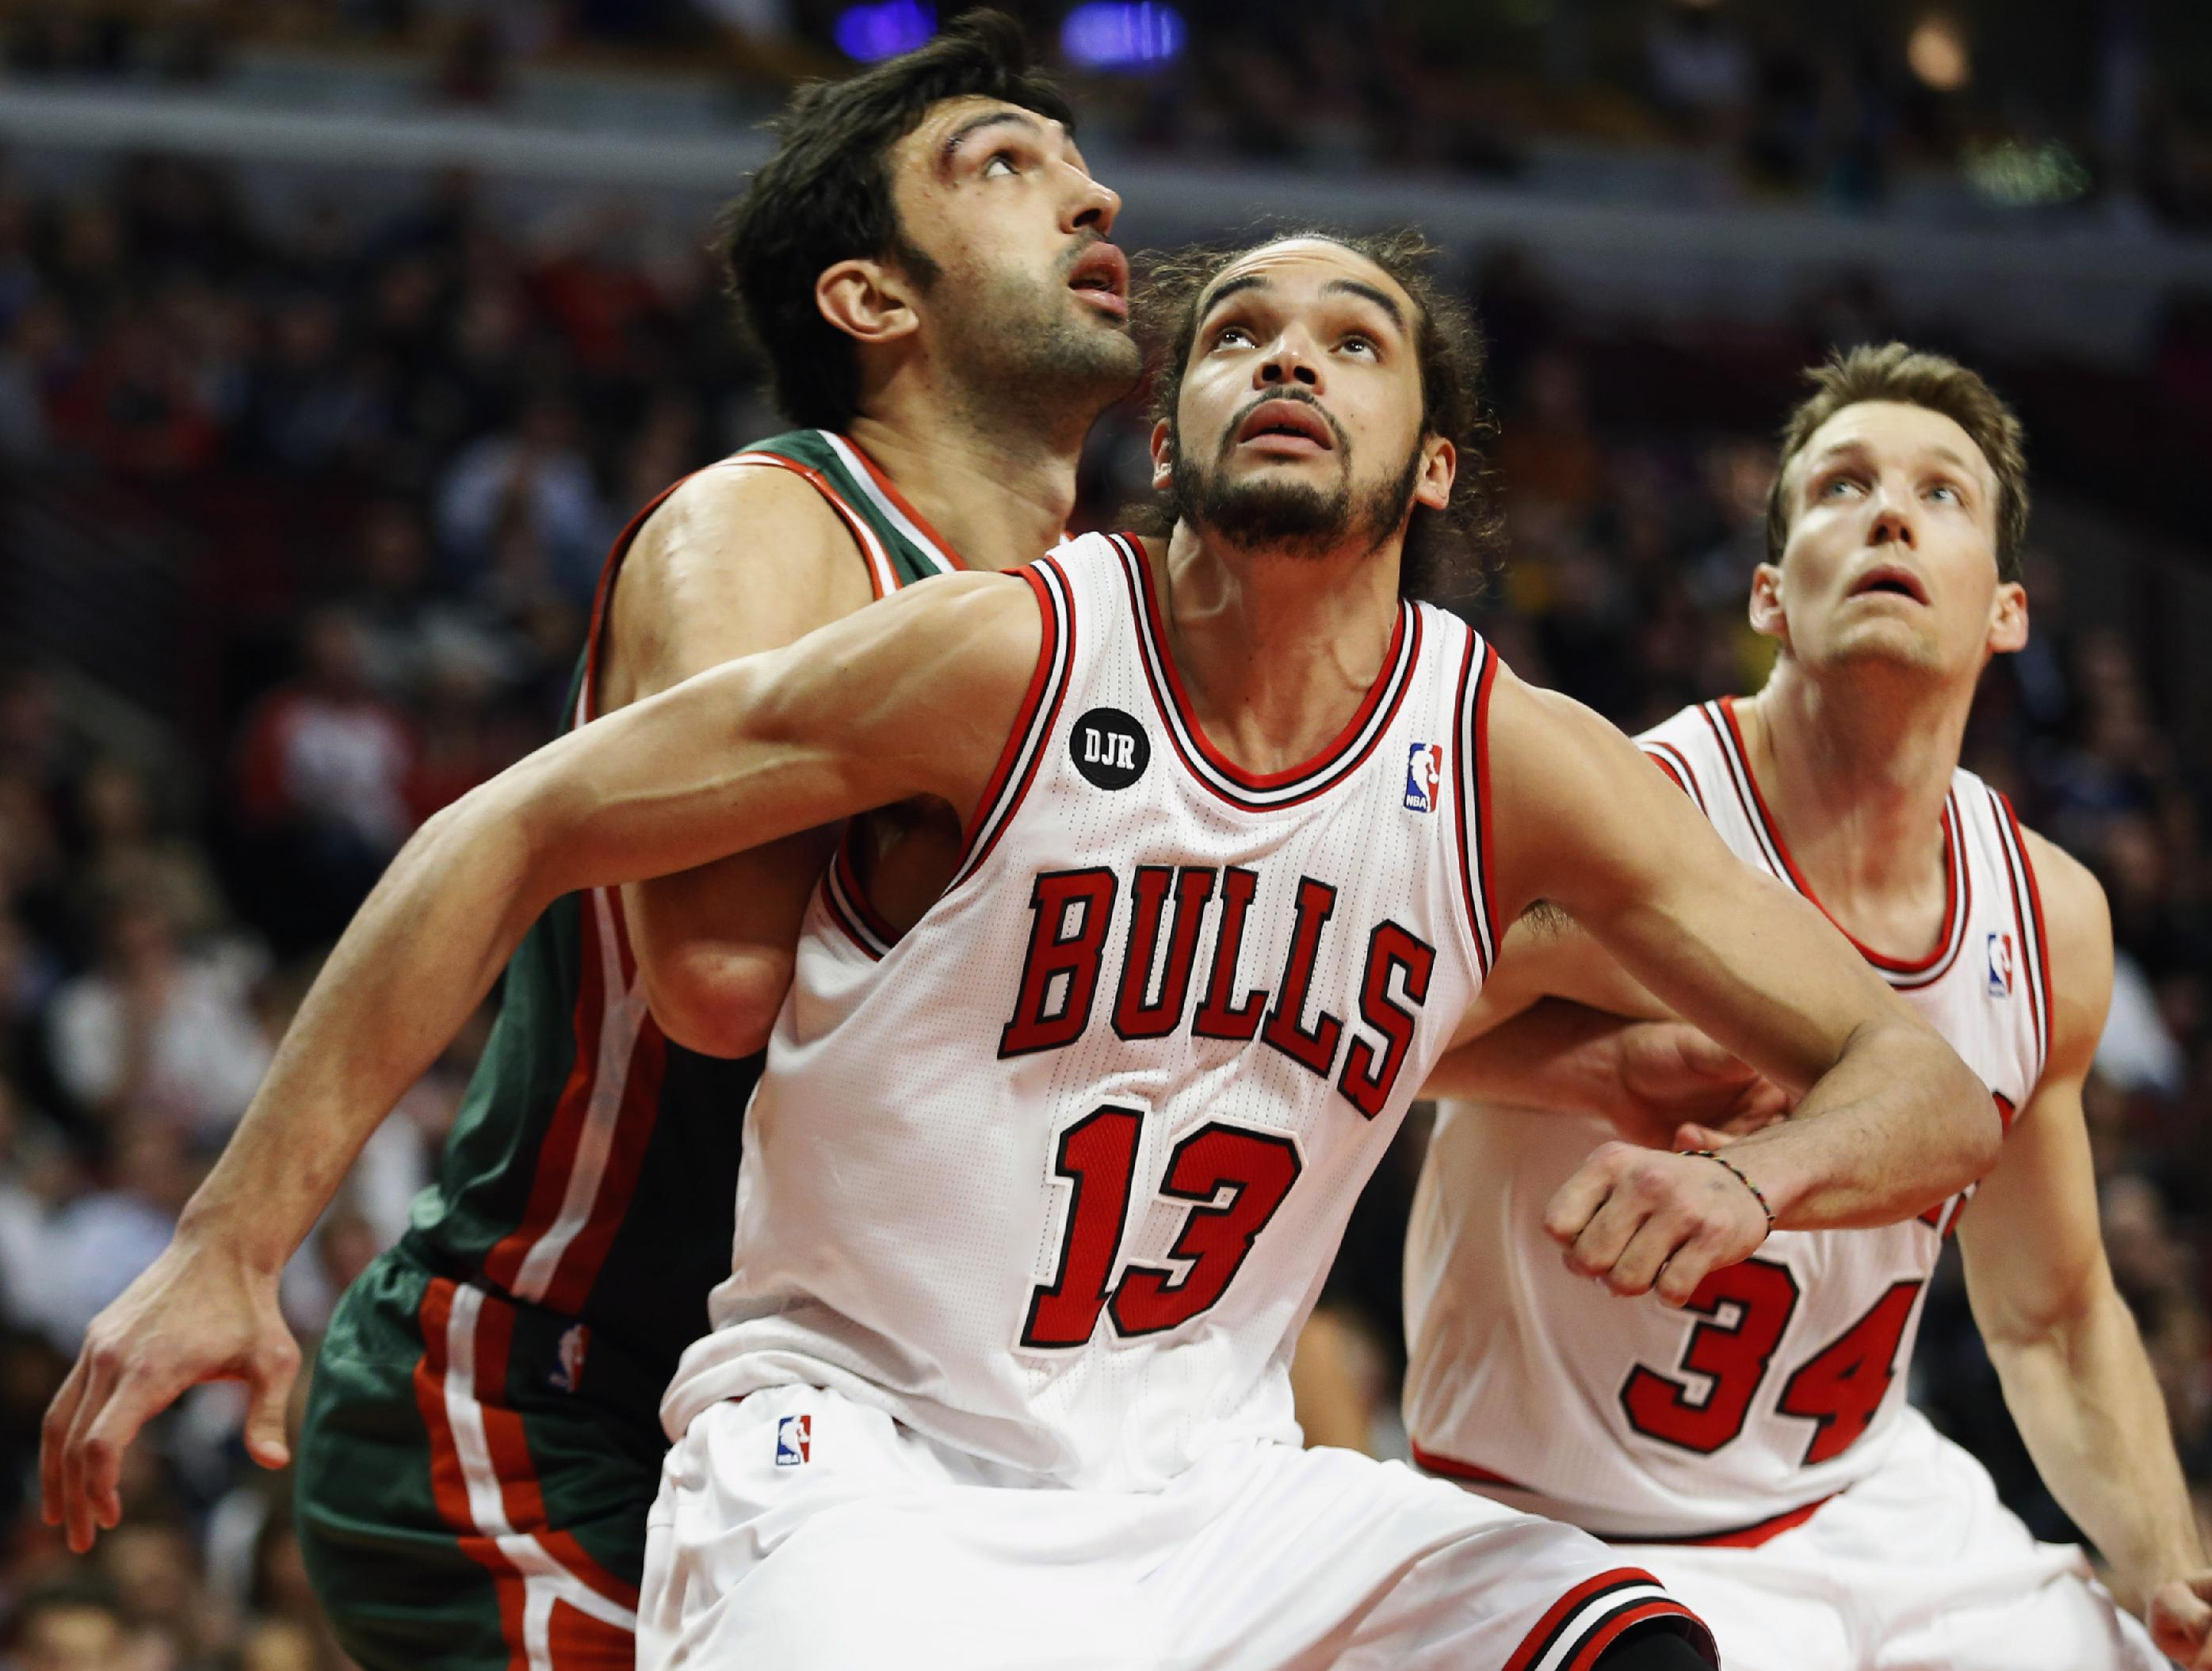 In this April 4, 2014 file photo, Chicago Bulls center Joakim Noah (13) defends against Milwaukee Bucks center Zaza Pachulia during an NBA basketball game in Chicago.  A person familiar with the situation says that Noah is the NBA's Defensive Player of the Year. The person spoke Monday, April 21, 2014 on the condition of anonymity because the award had not been announced